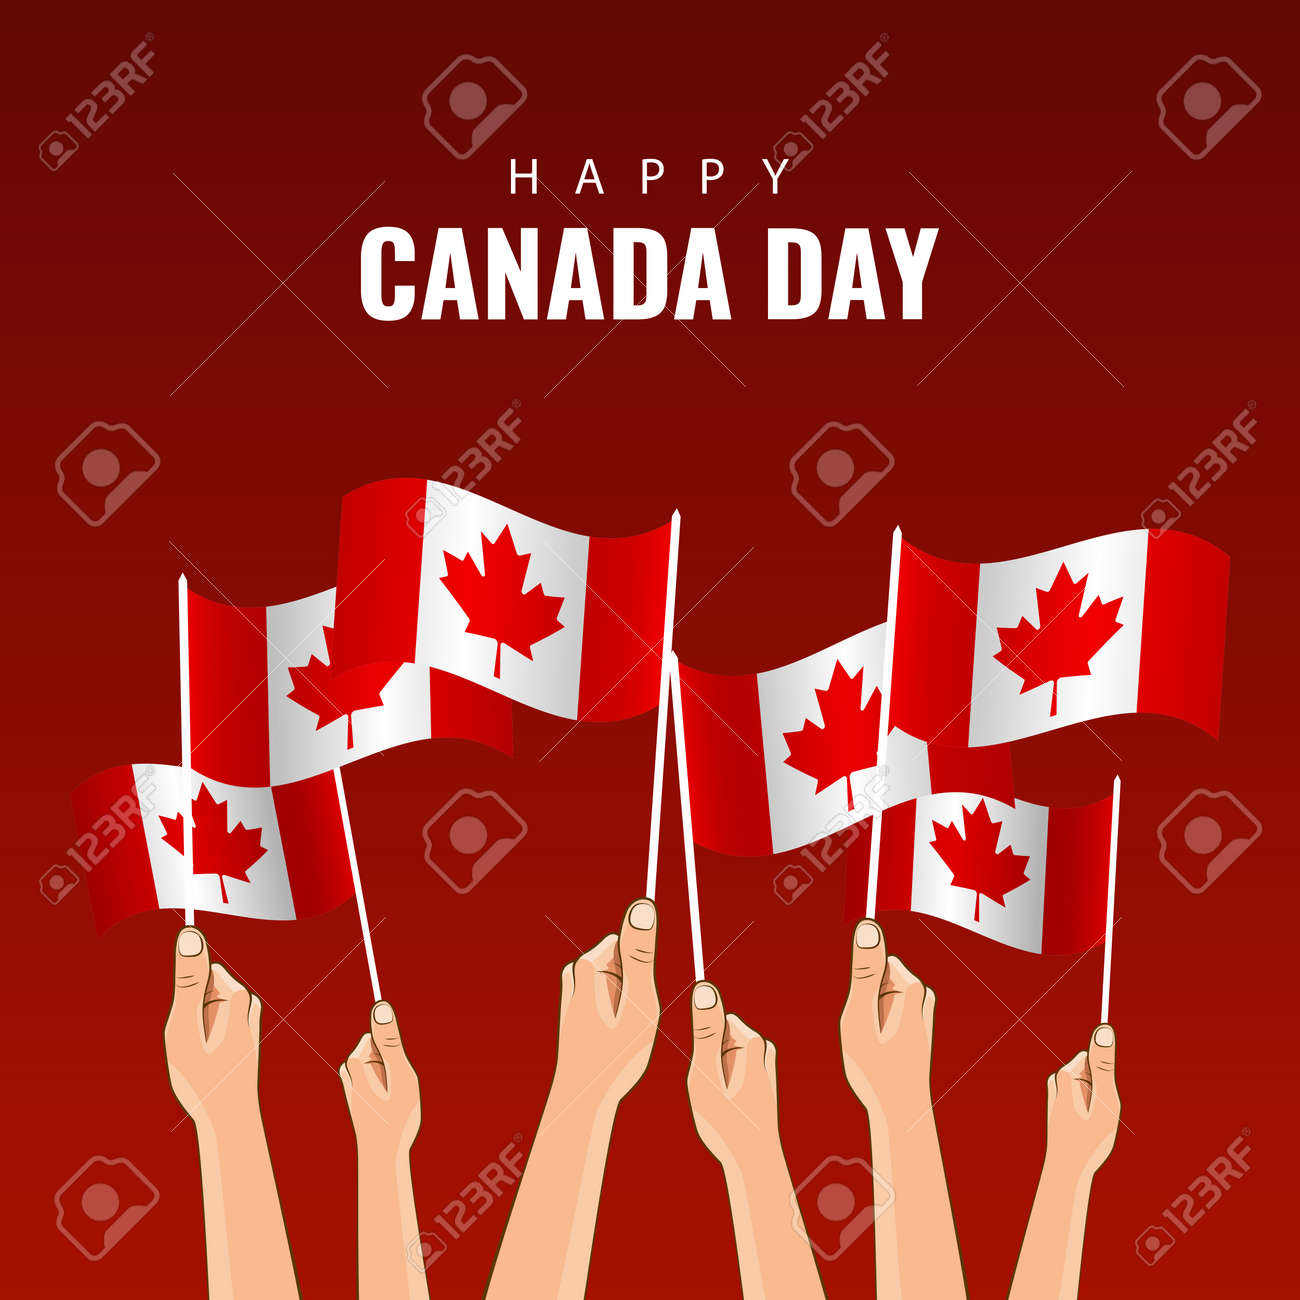 Vector Illustration of Canada day. Hands with flags of Canada - 169208628